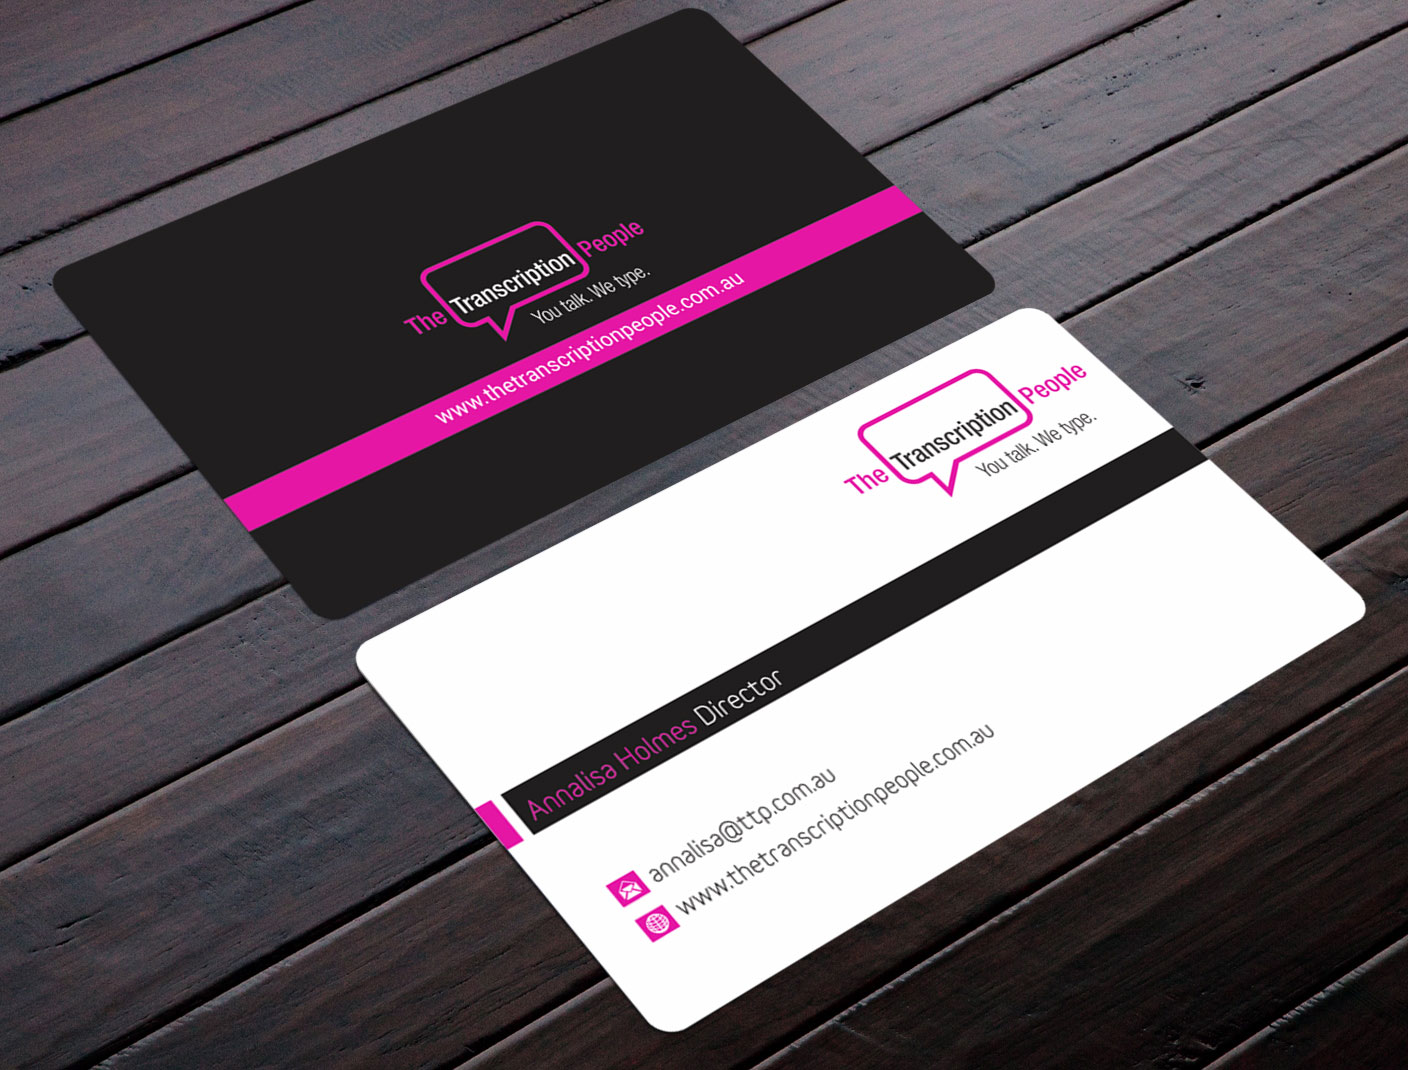 Business business card design for the transcription people pty ltd business business card design for the transcription people pty ltd in australia design 9792888 colourmoves